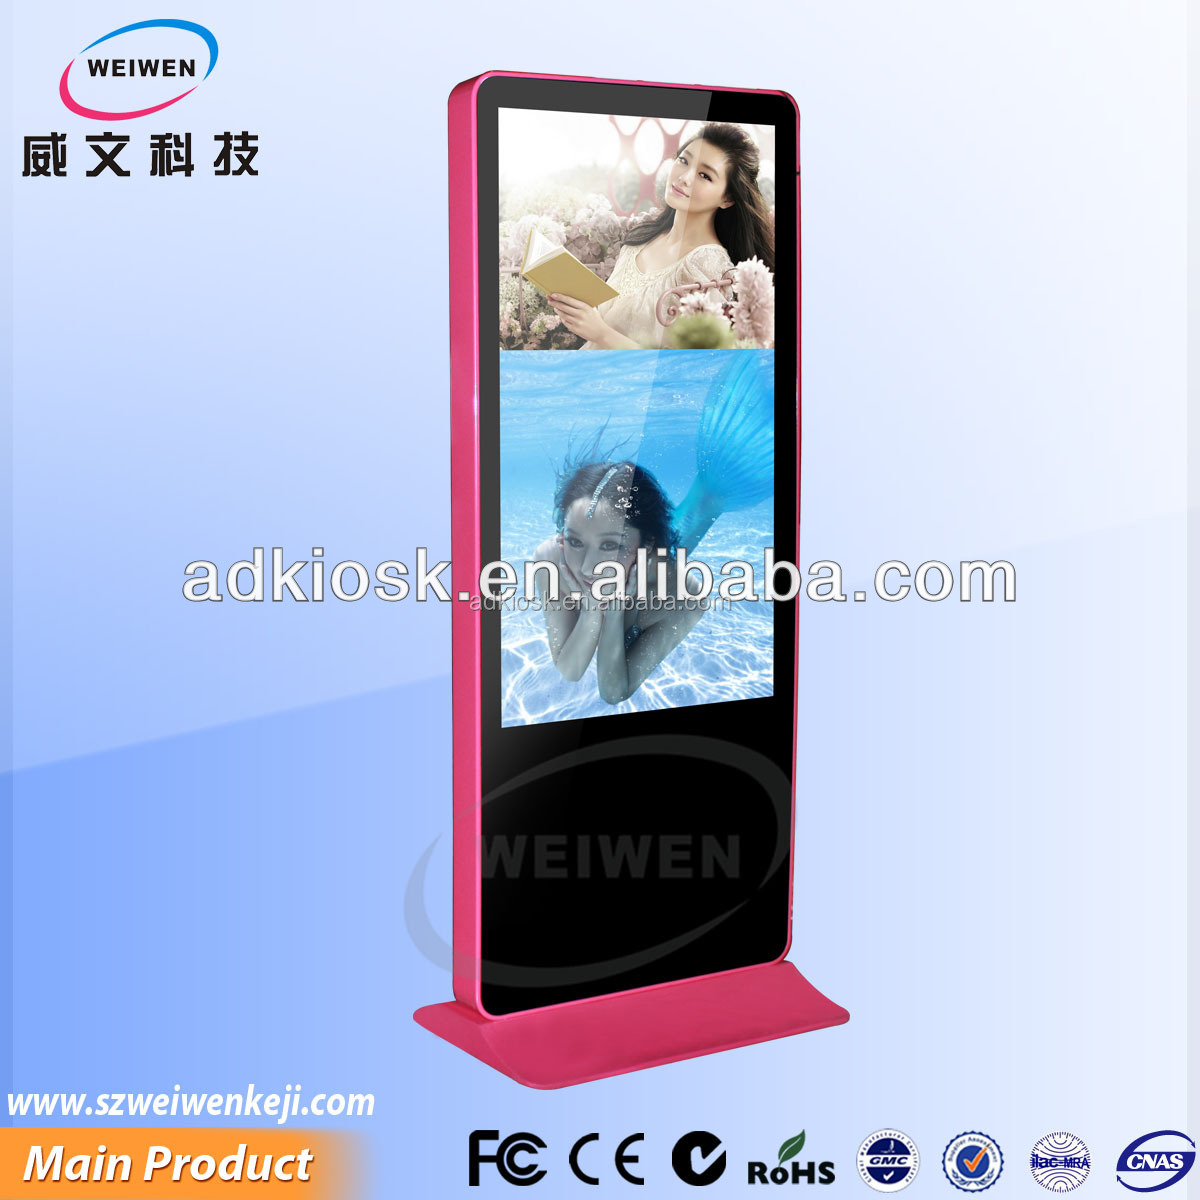 sammsung 42inch iphone design digital advertising totem touch kiosk hardware